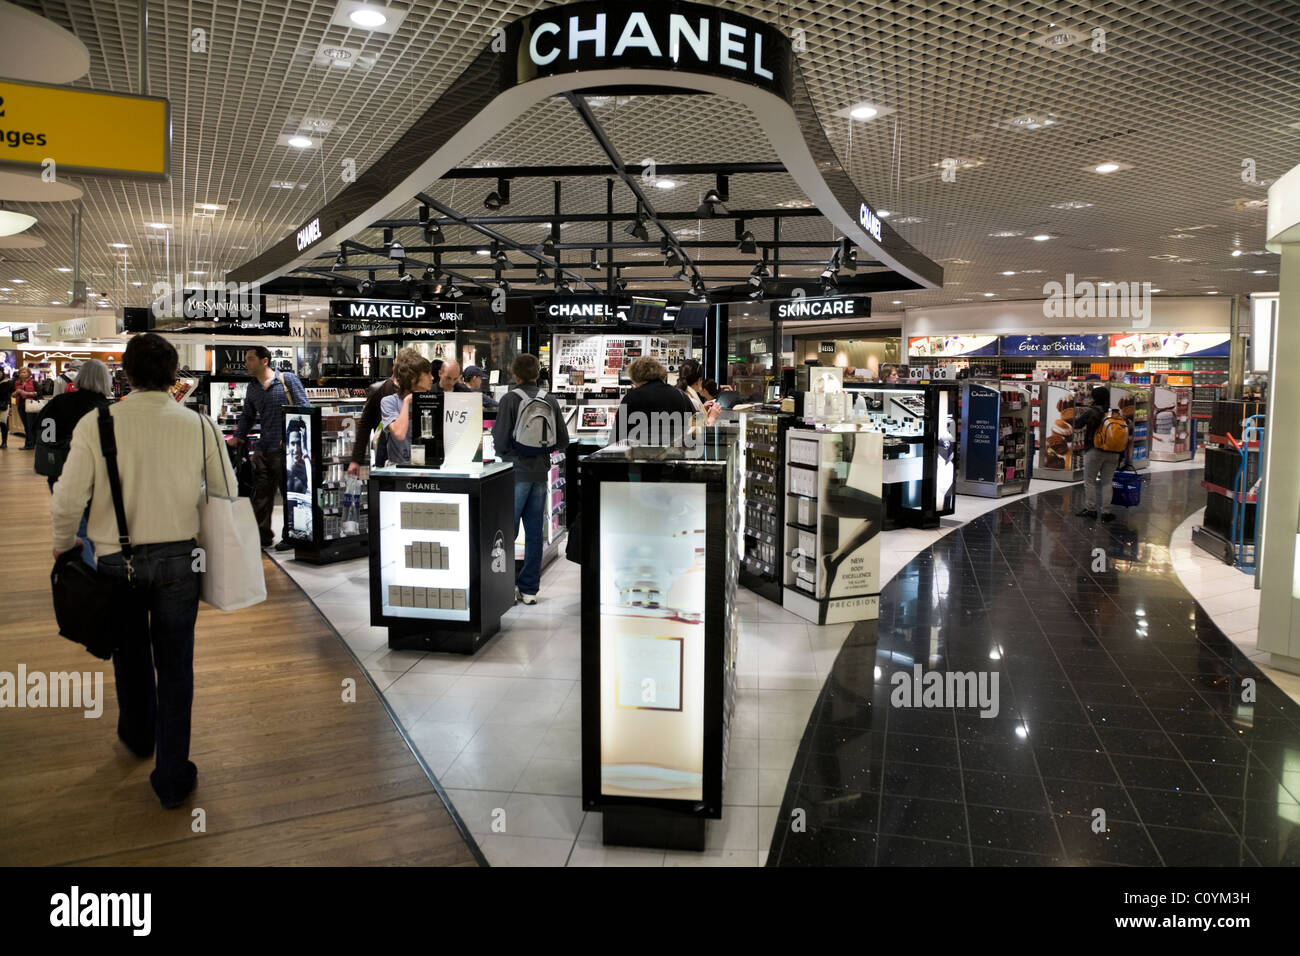 chanel outlet. luxury goods / chanel perfume perfumery cosmetics shop outlet in departure lounge at s